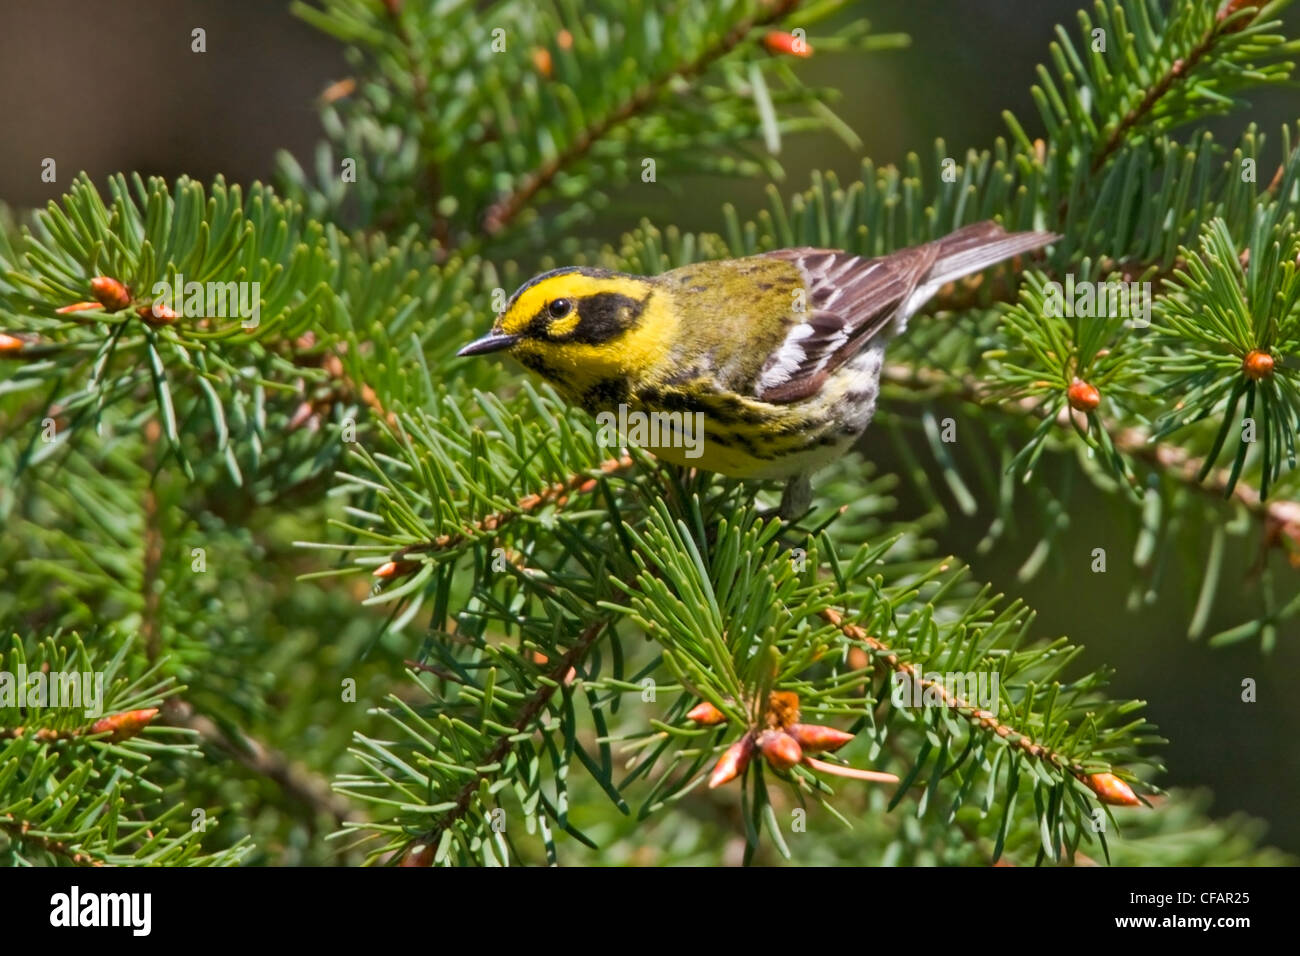 Townsend's warbler (Dendroica townsendi) perched on an evergreen branch in Victoria, Vancouver Island, British - Stock Image